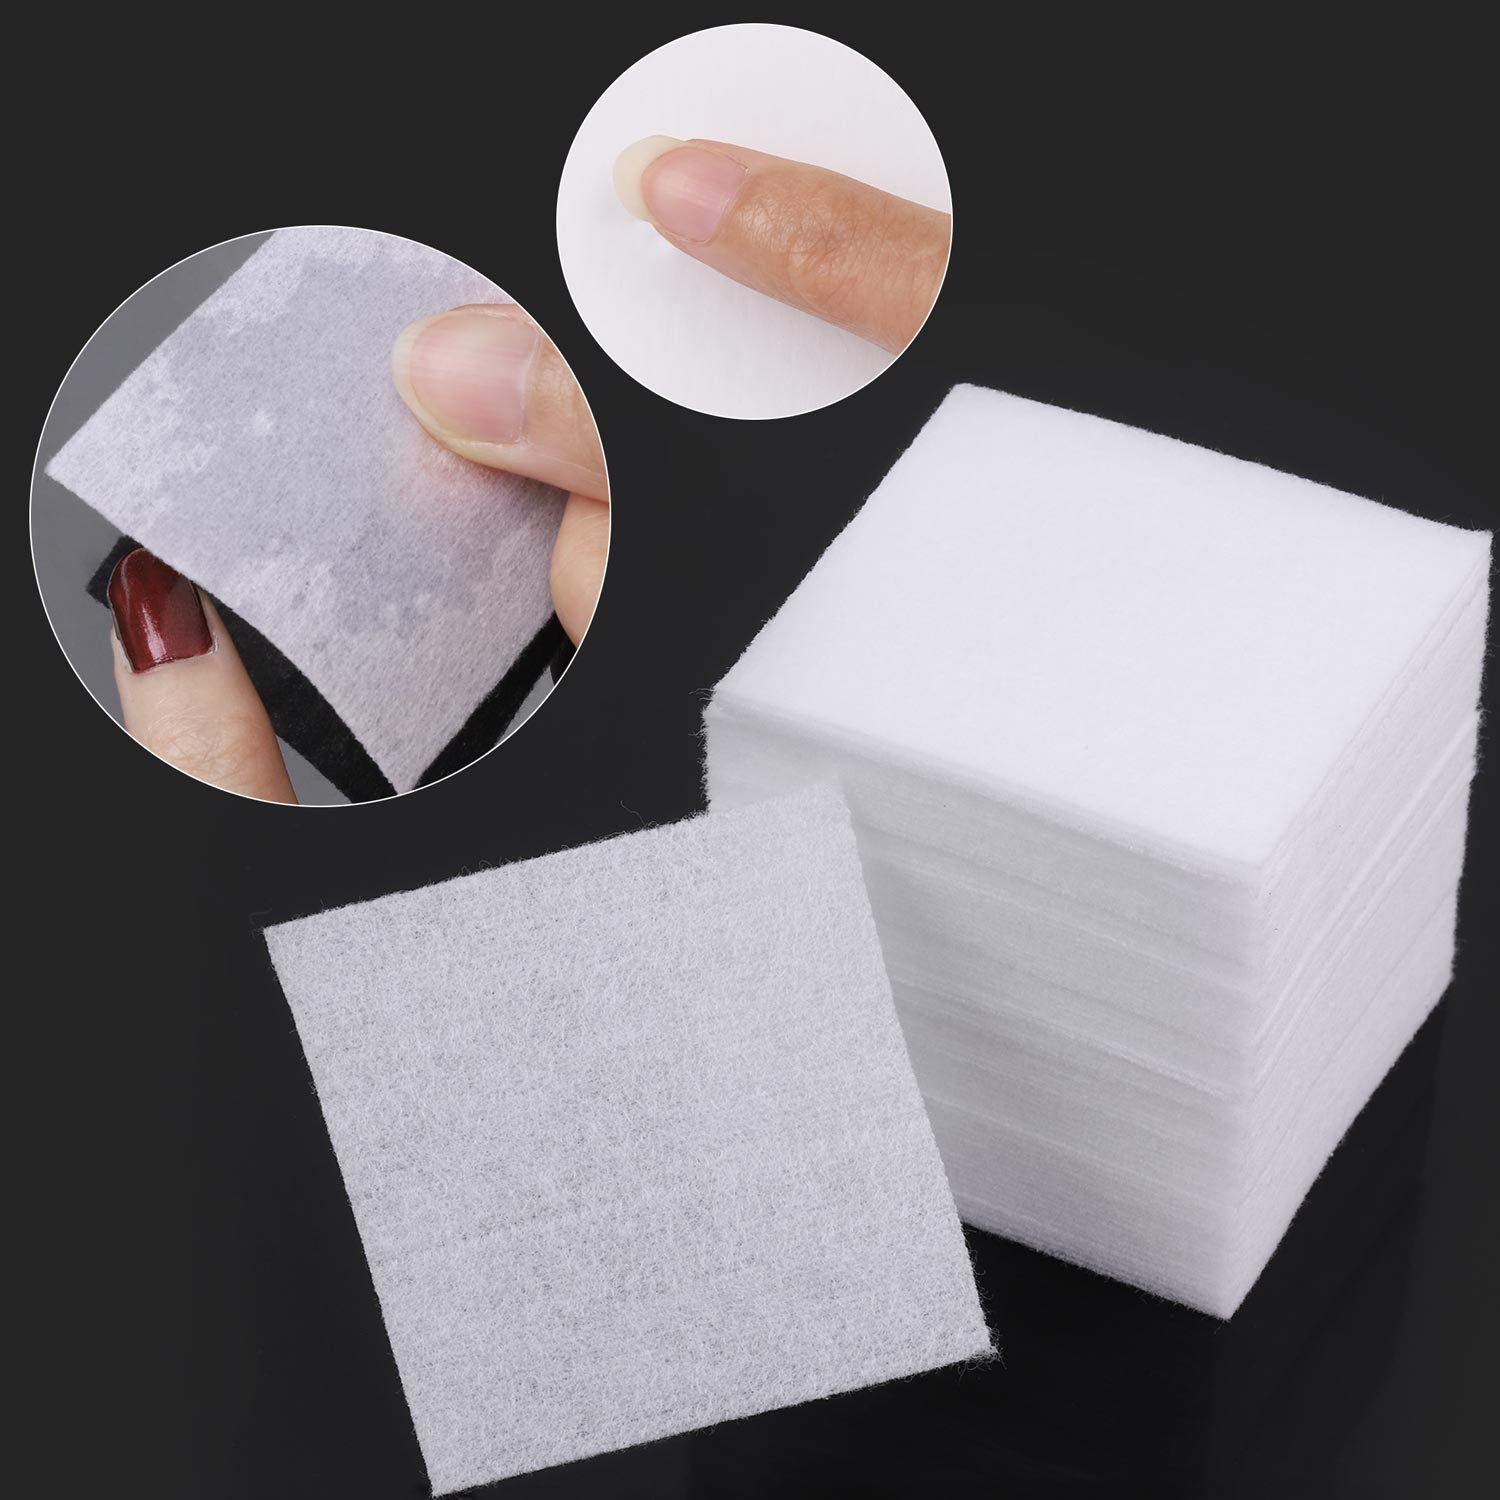 960 pcs Lint Free Nail Wipes Cotton Pads Remover to Soak Off Acrylic Gel Nail Polish with Pumb Bottle Dispenser and 1 Cuticle Pusher : Beauty